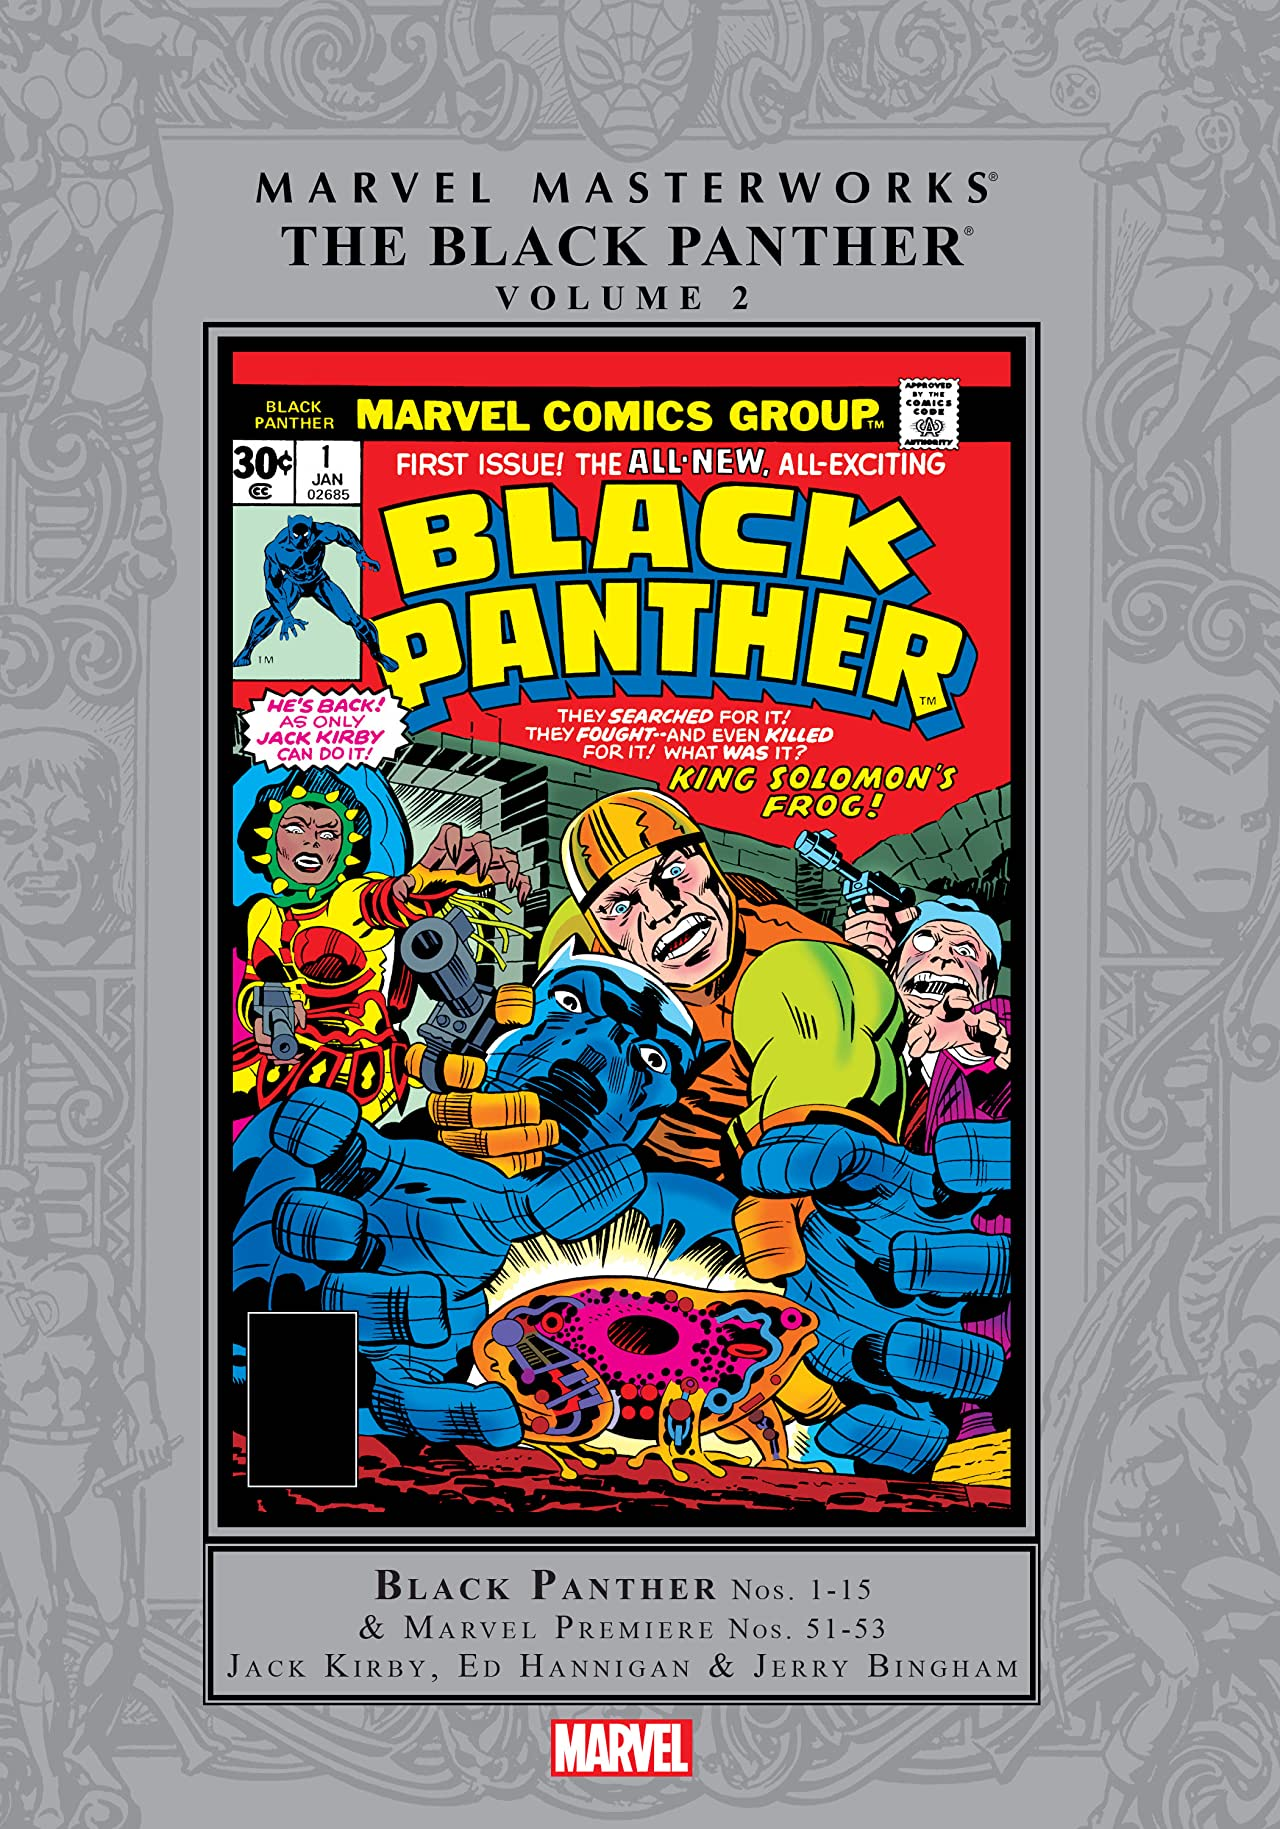 Black Panther Masterworks Vol. 2